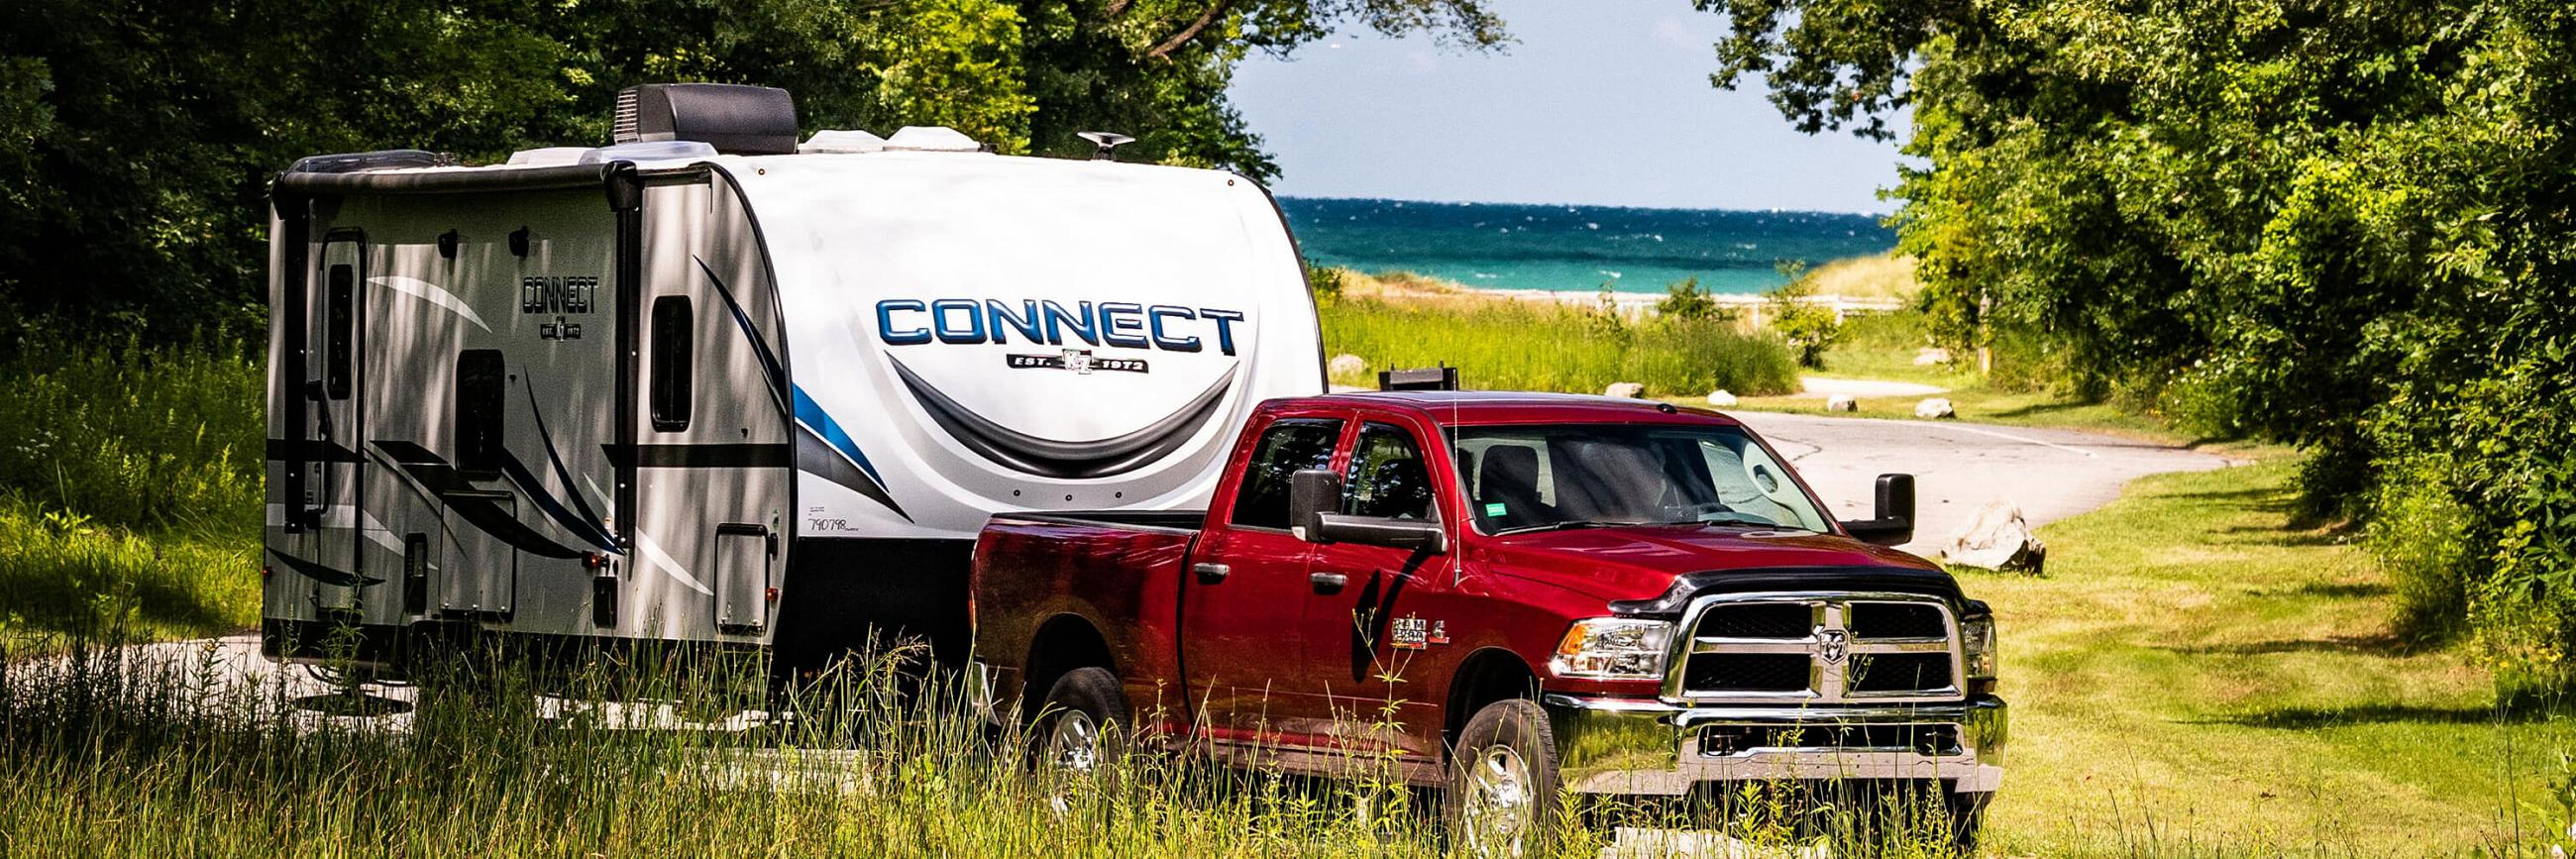 2020 KZ RV Connect Travel Trailer being Towed to Campsite